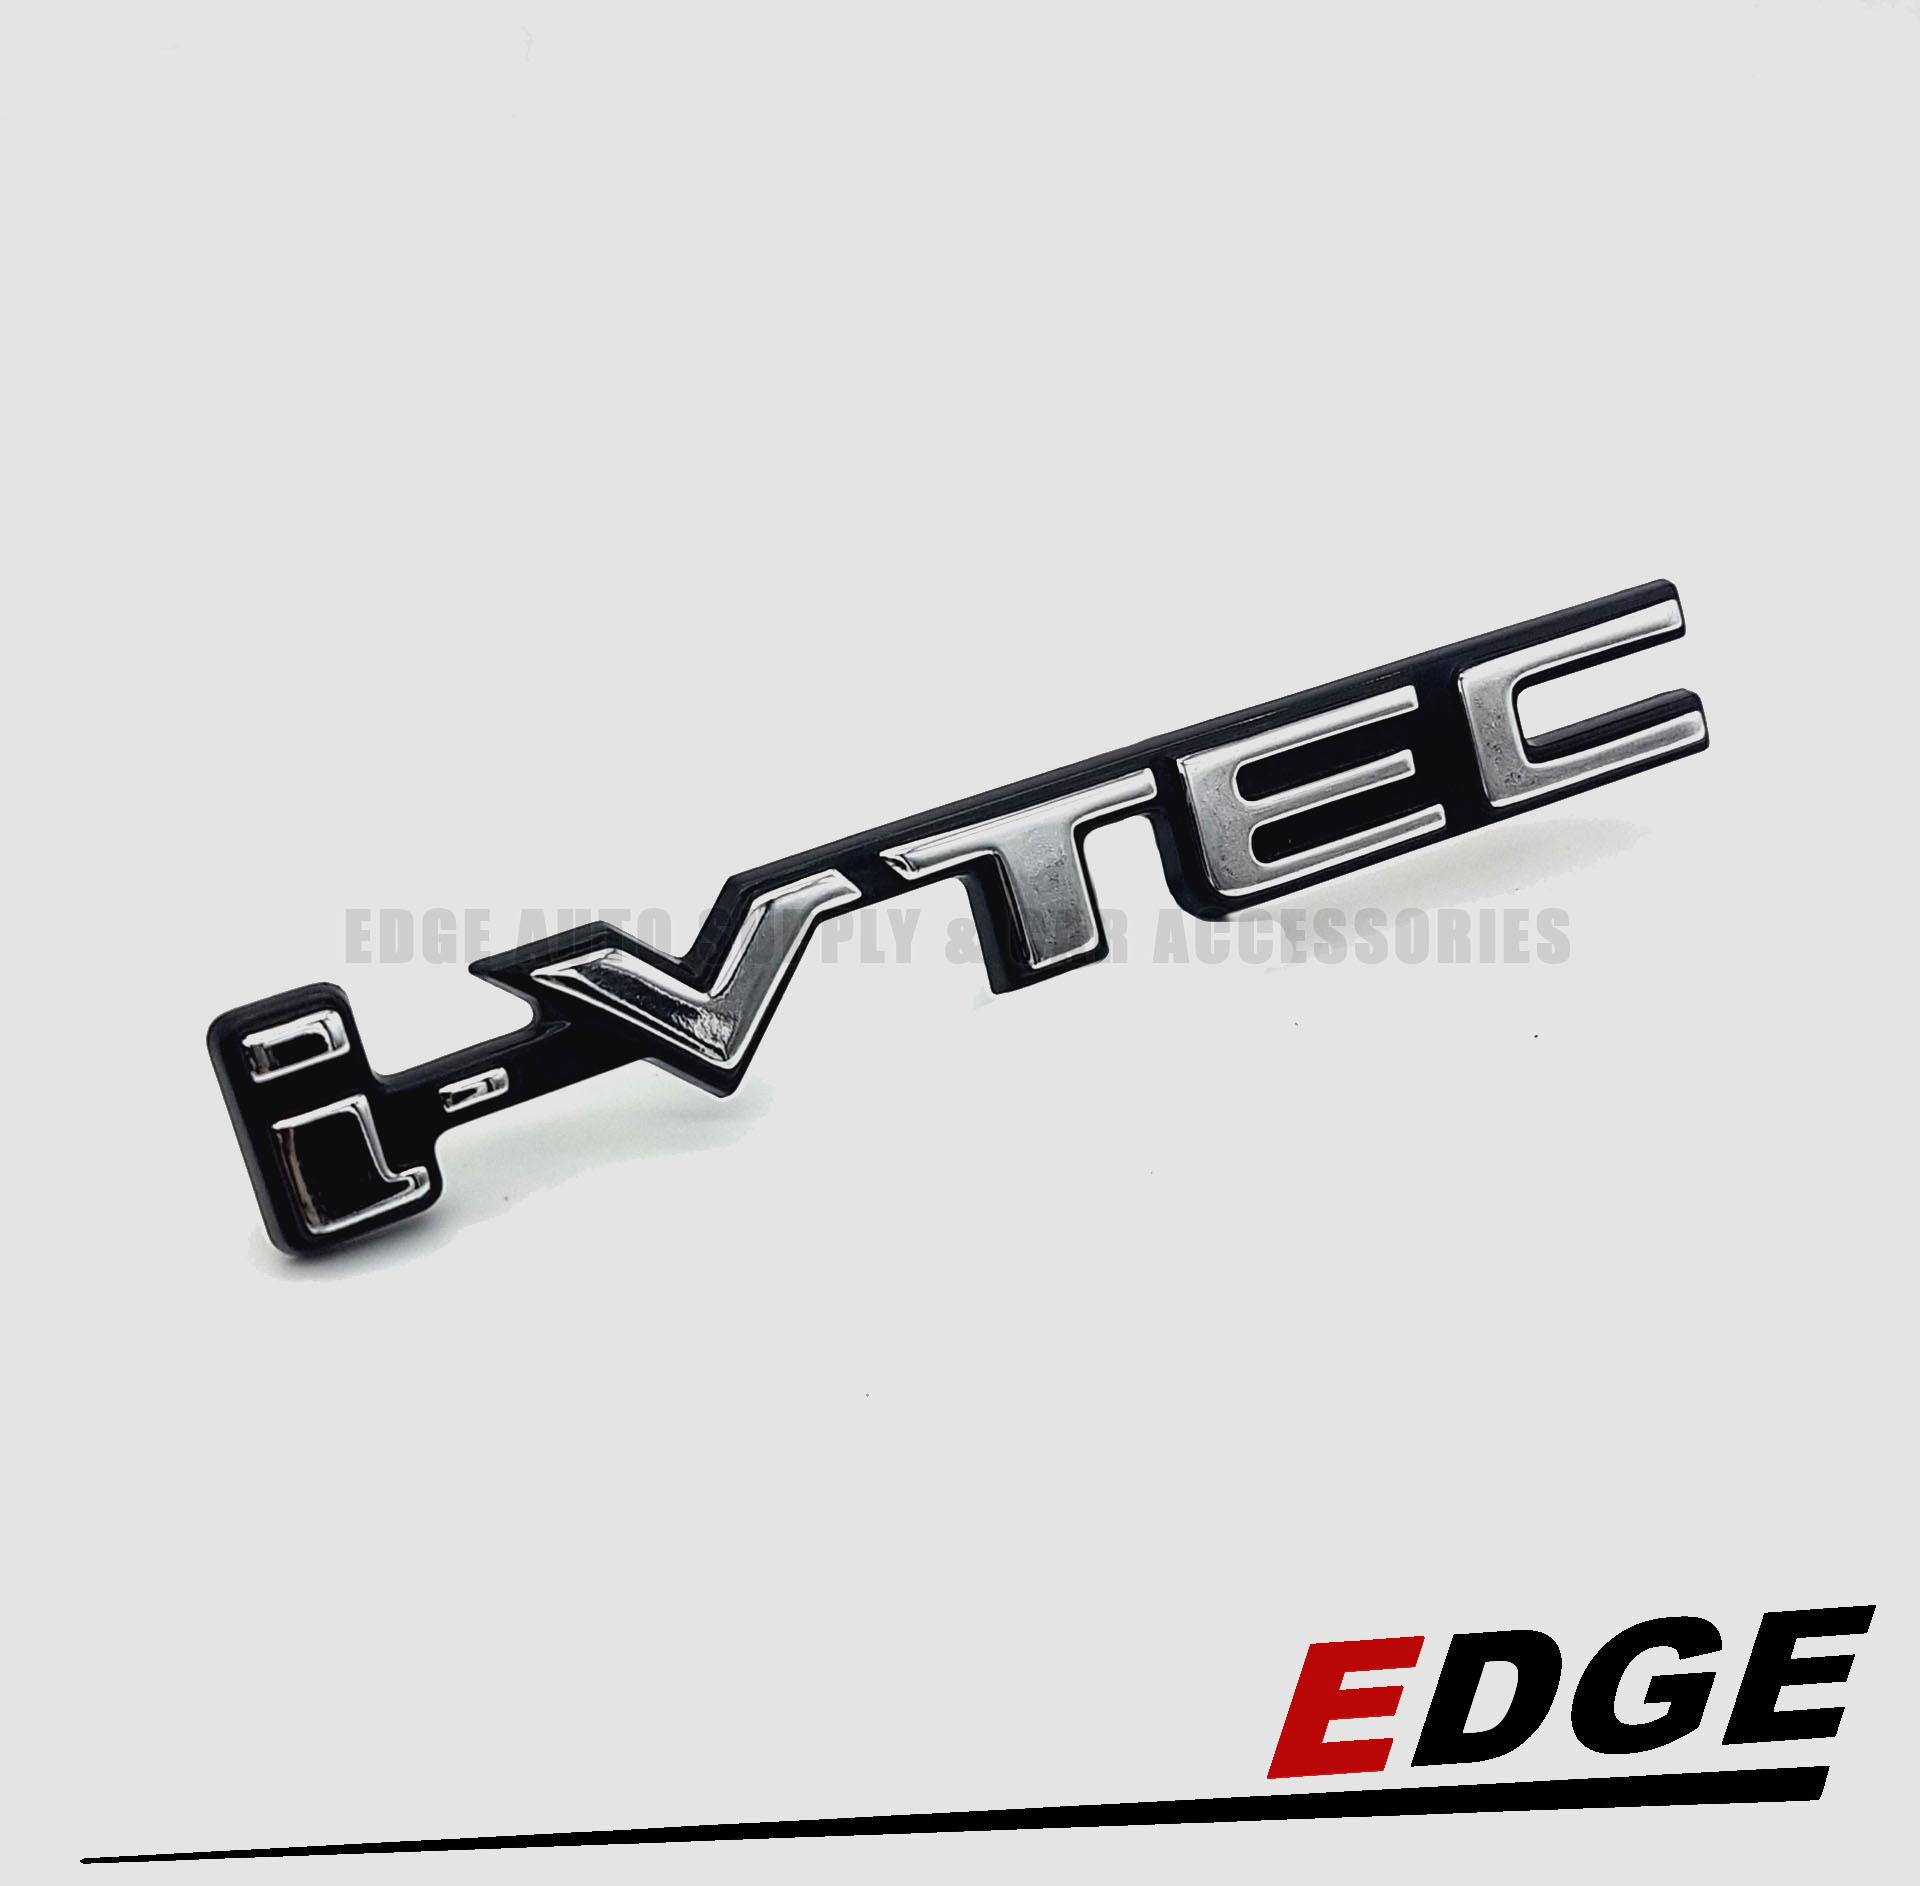 (black/chrome) Honda I-Vtec Word Stick-On Emblem Decal Logo Symbol Sign 3d Honda Motors Rs Rr Vtec Mugen Type Car Displacement Auto Exterior Accessories Trunk Rear Hood Fender Badge Sticker Type Abs Plastic By Edge Auto Supply & Car Accessories.